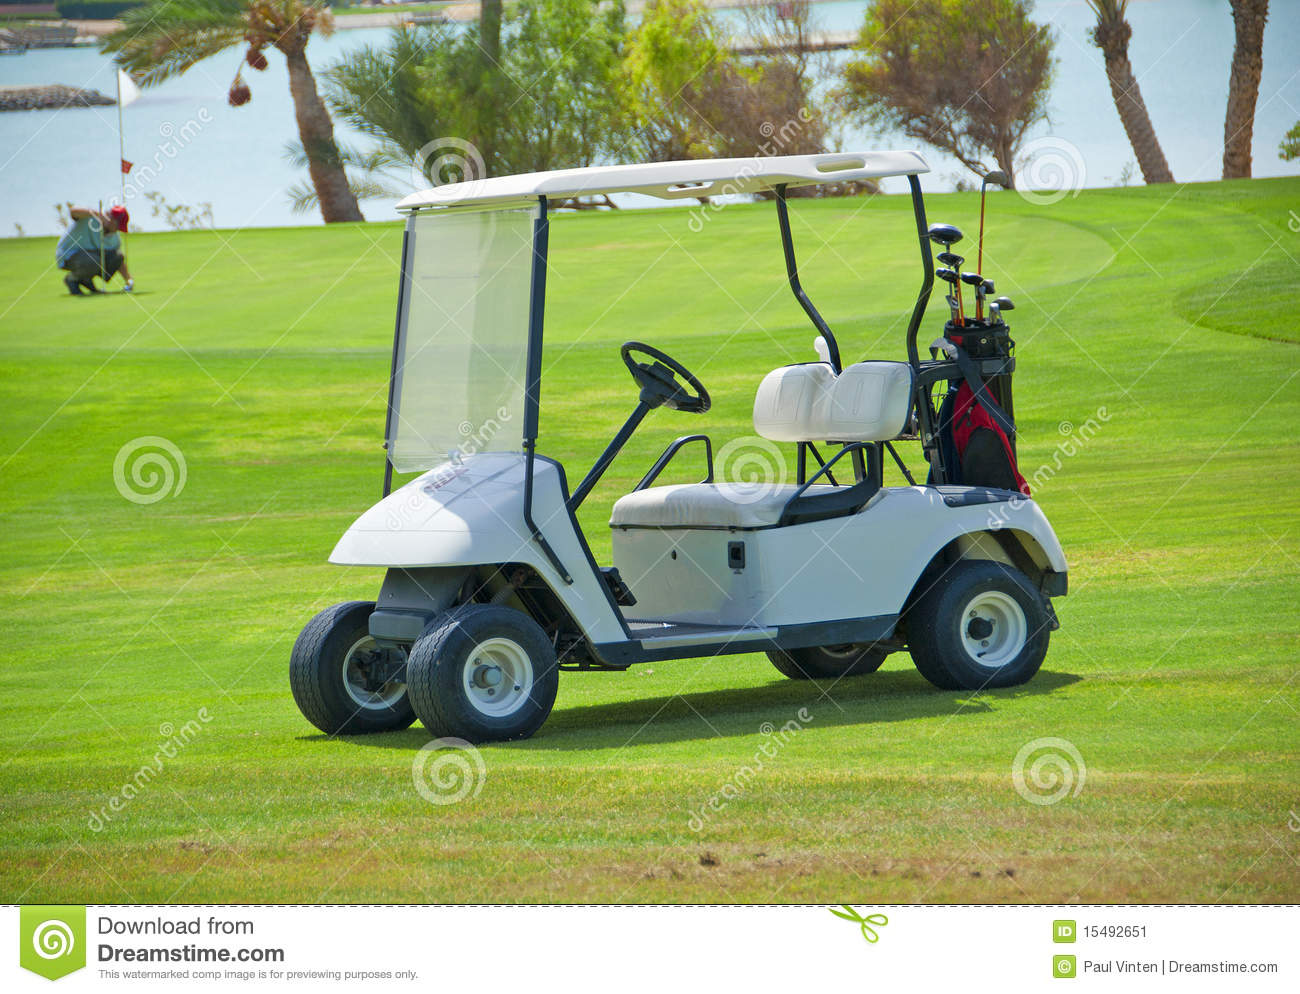 Golf buggy on a fairway stock image. Image of fairway - 15492651 on trash can clip art, bad golfer clip art, men's bow tie clip art, group clip art, yacht racing clip art, cartoon climbing mountain clip art, appalachian mountains clip art, mountain range clip art, welcome clip art, trash day clip art, spotlight clip art, lights camera action clip art, mountain hiking clip art, information clip art, dumpster clip art, computer clip art, fairway wood clip art, mountain scene clip art, flashlight clip art, elevation contour clip art,